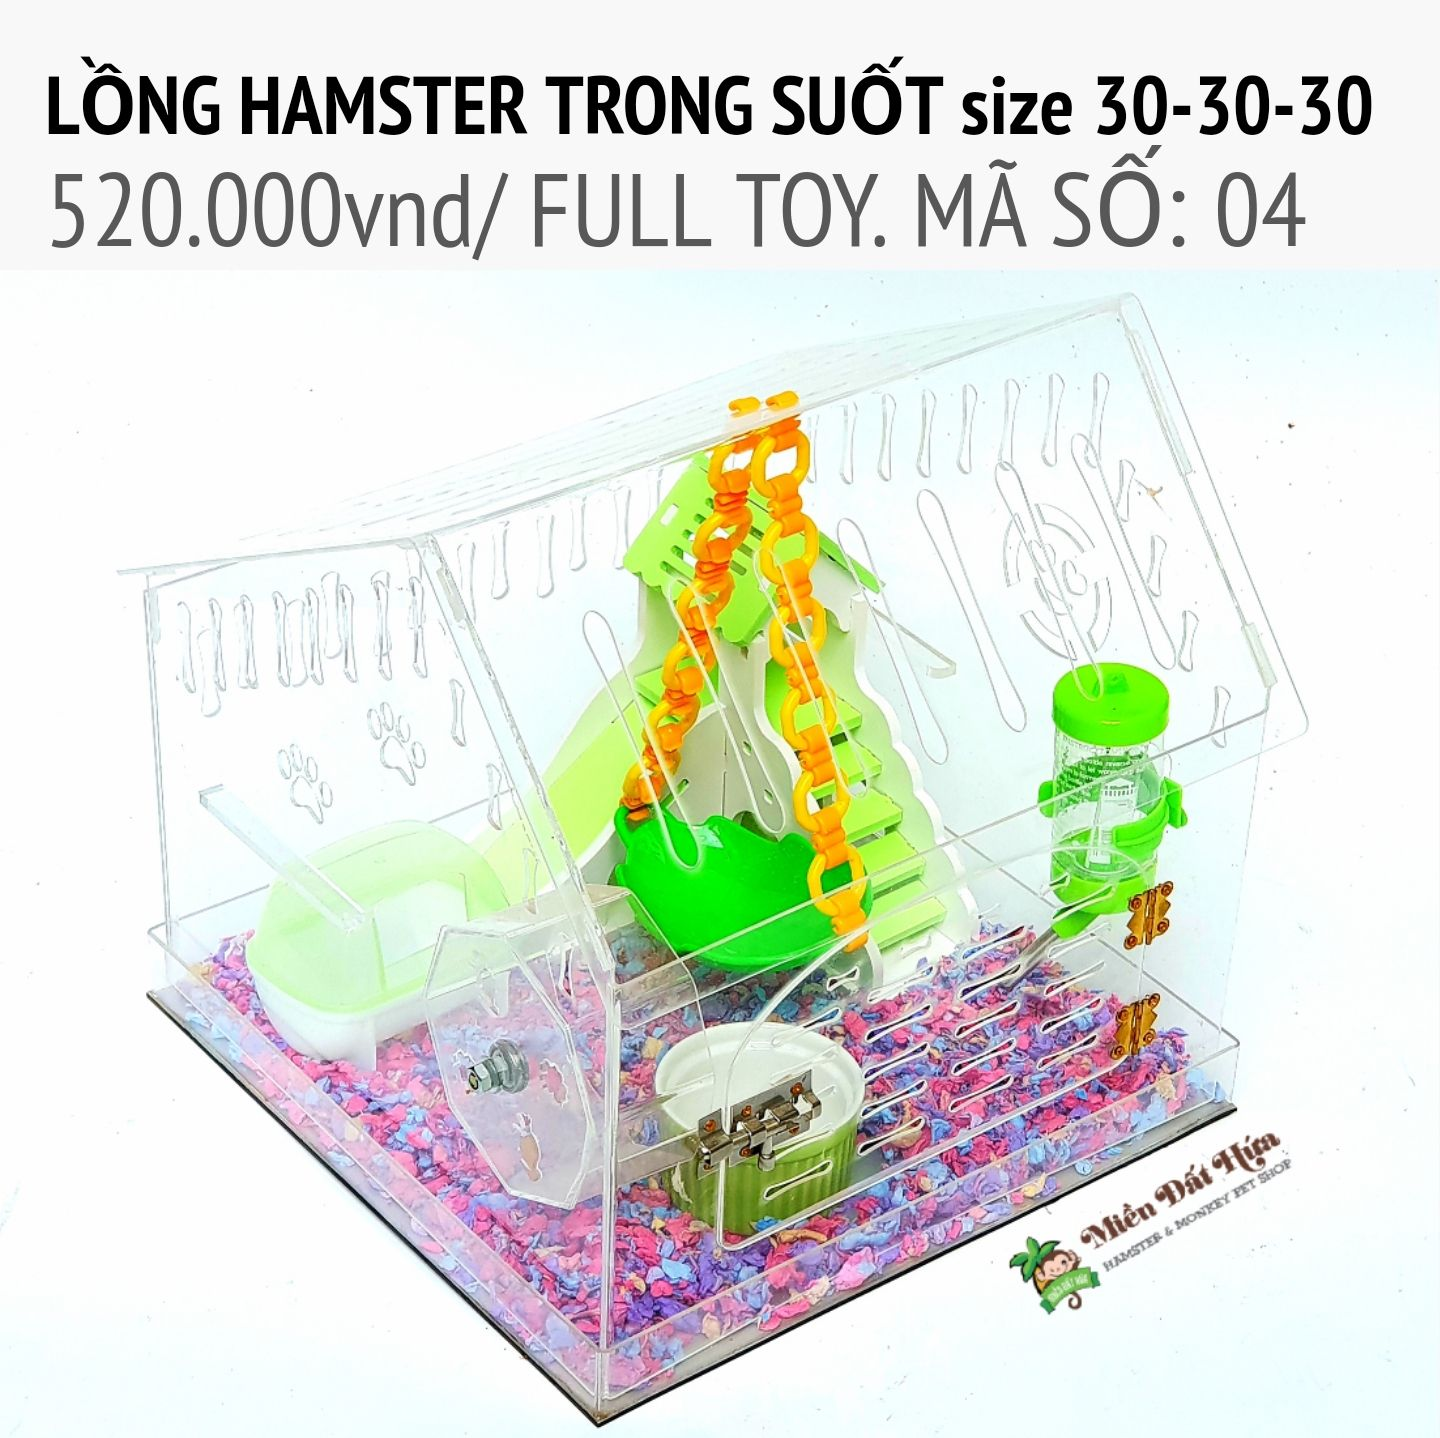 LỒNG hamster trong suốt size 30-30-30 ms04